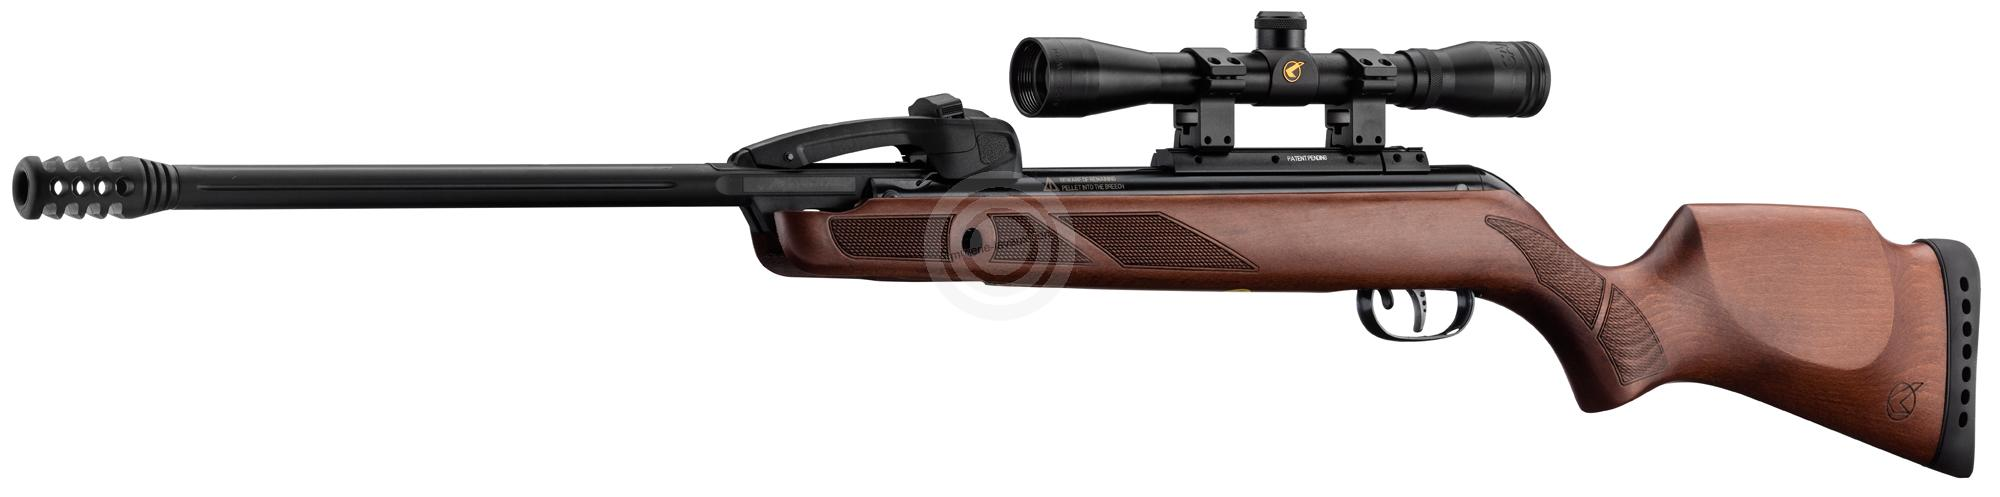 Carabine GAMO REPLAY 10 FAST SHOT IGT Combo 4x32 (chargeur 10 coups)